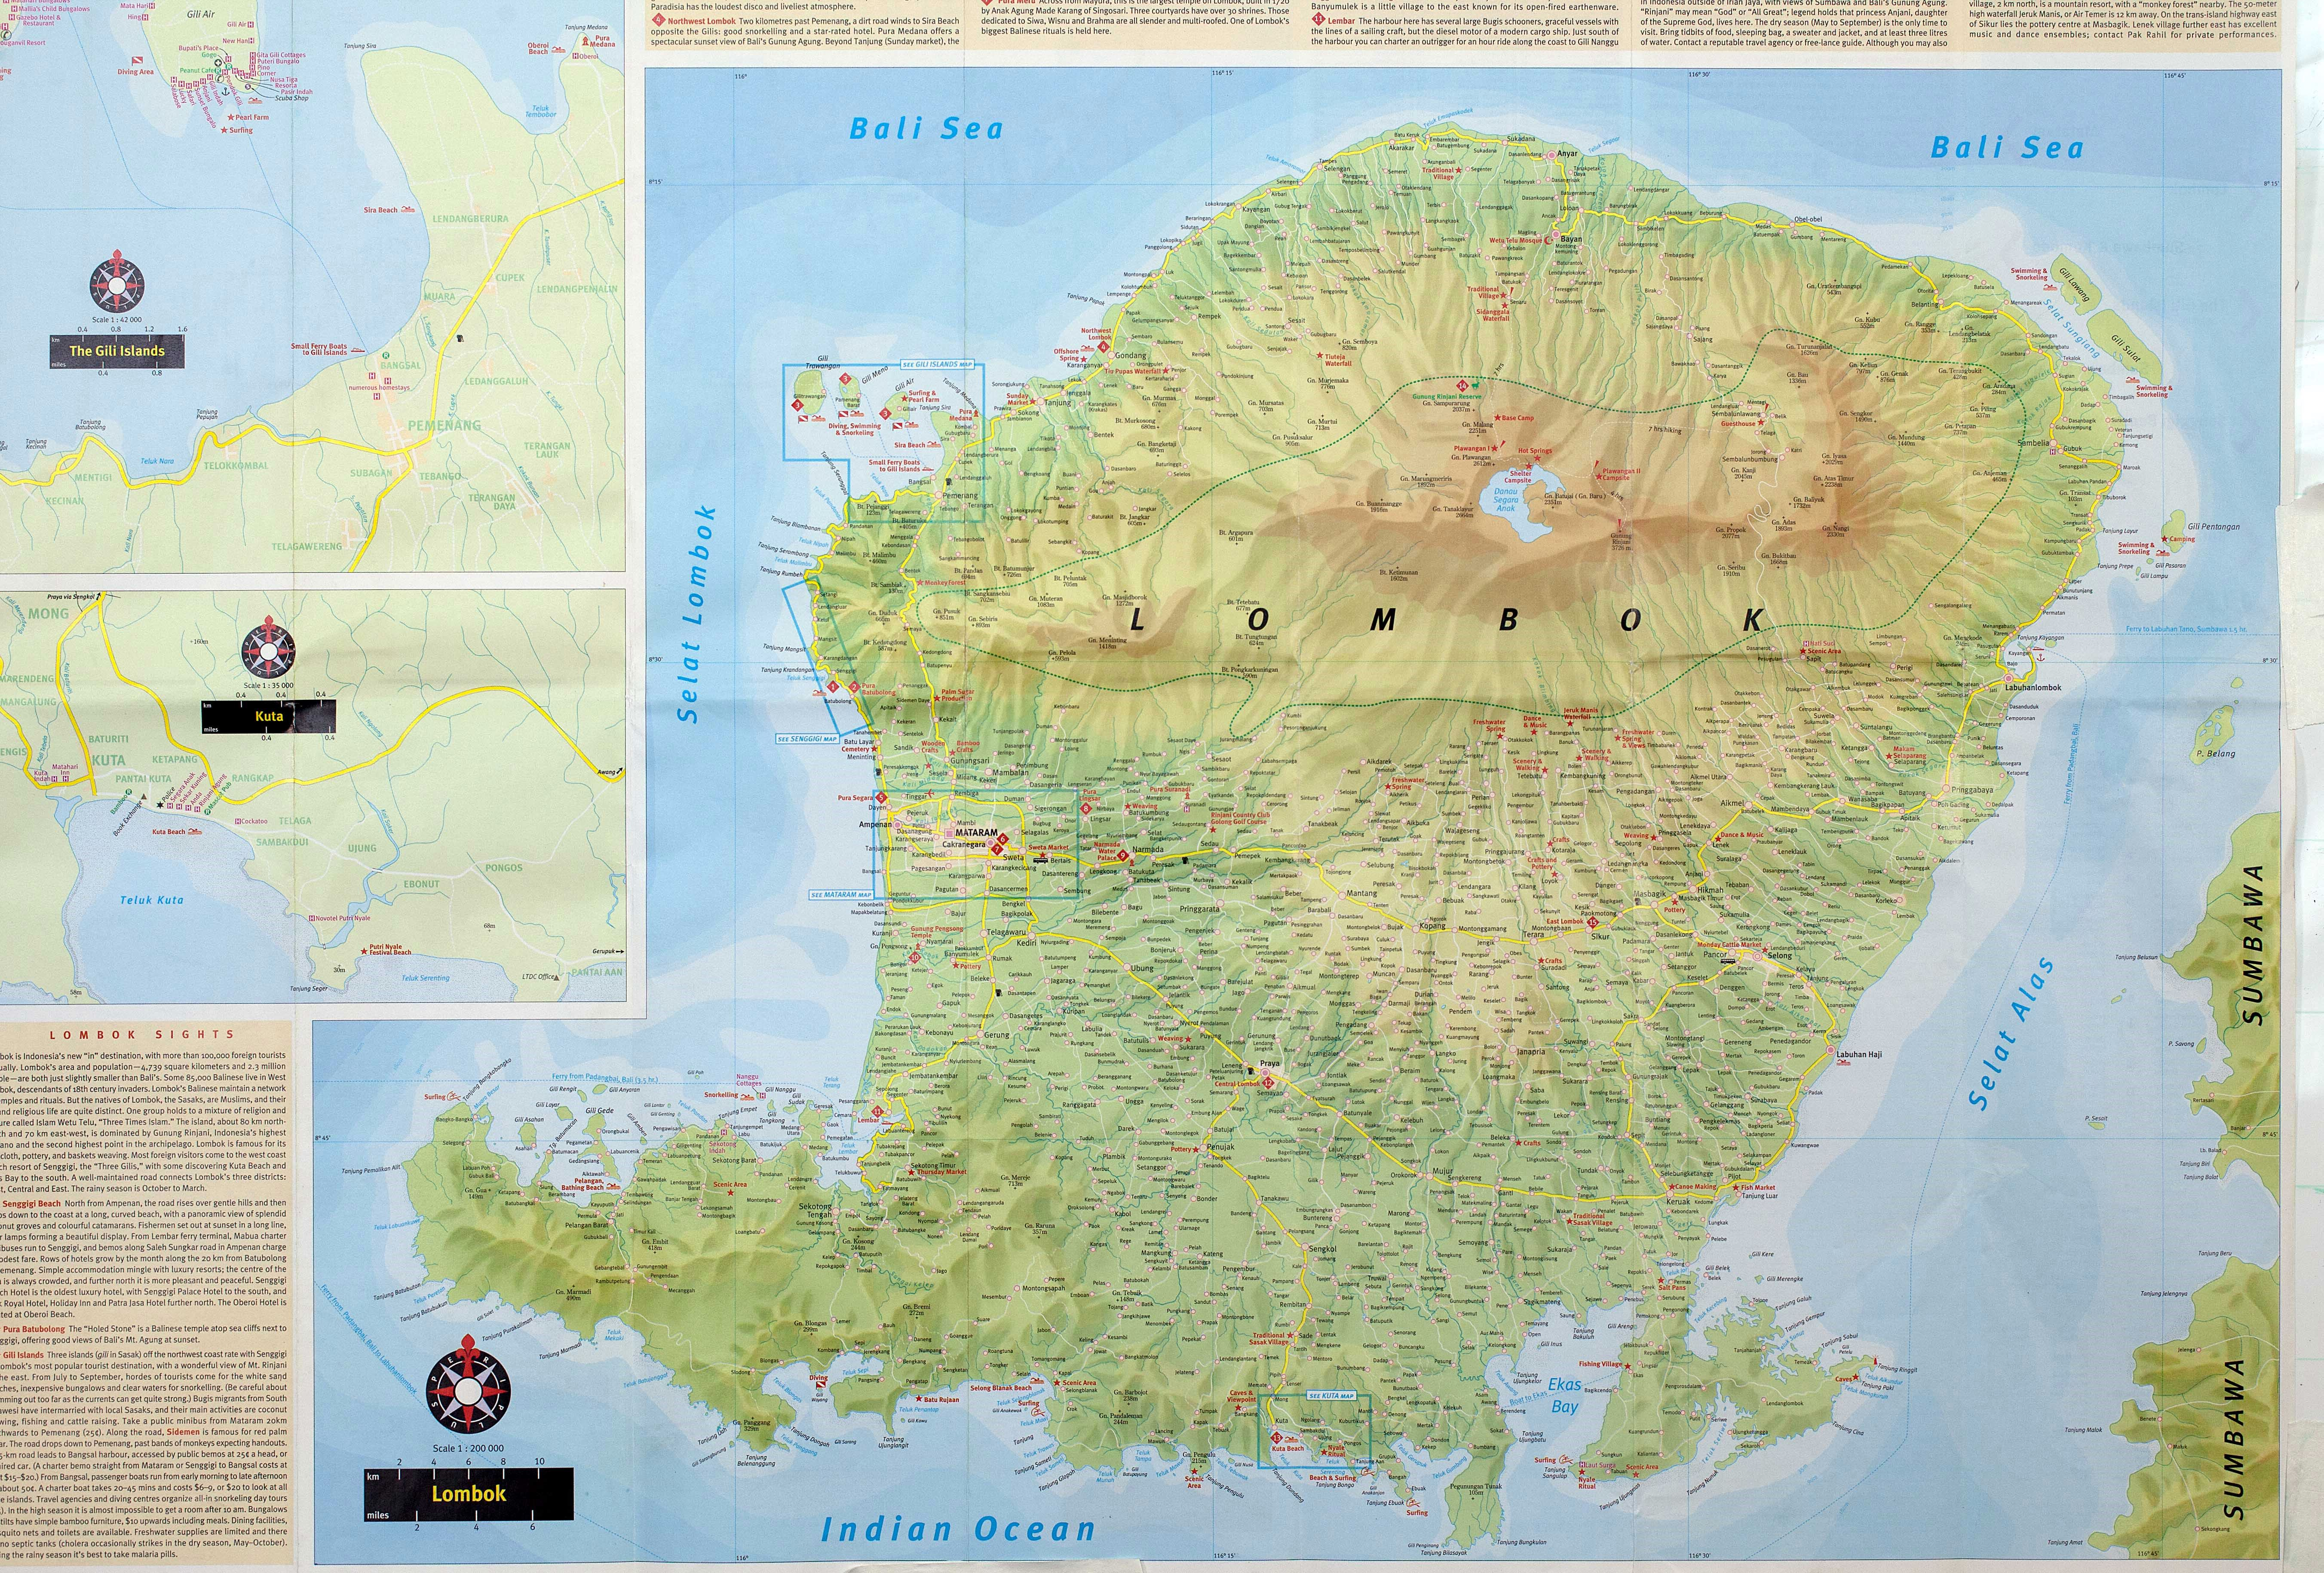 Large lombok island maps for free download and print high large map of lombok island 1 gumiabroncs Gallery